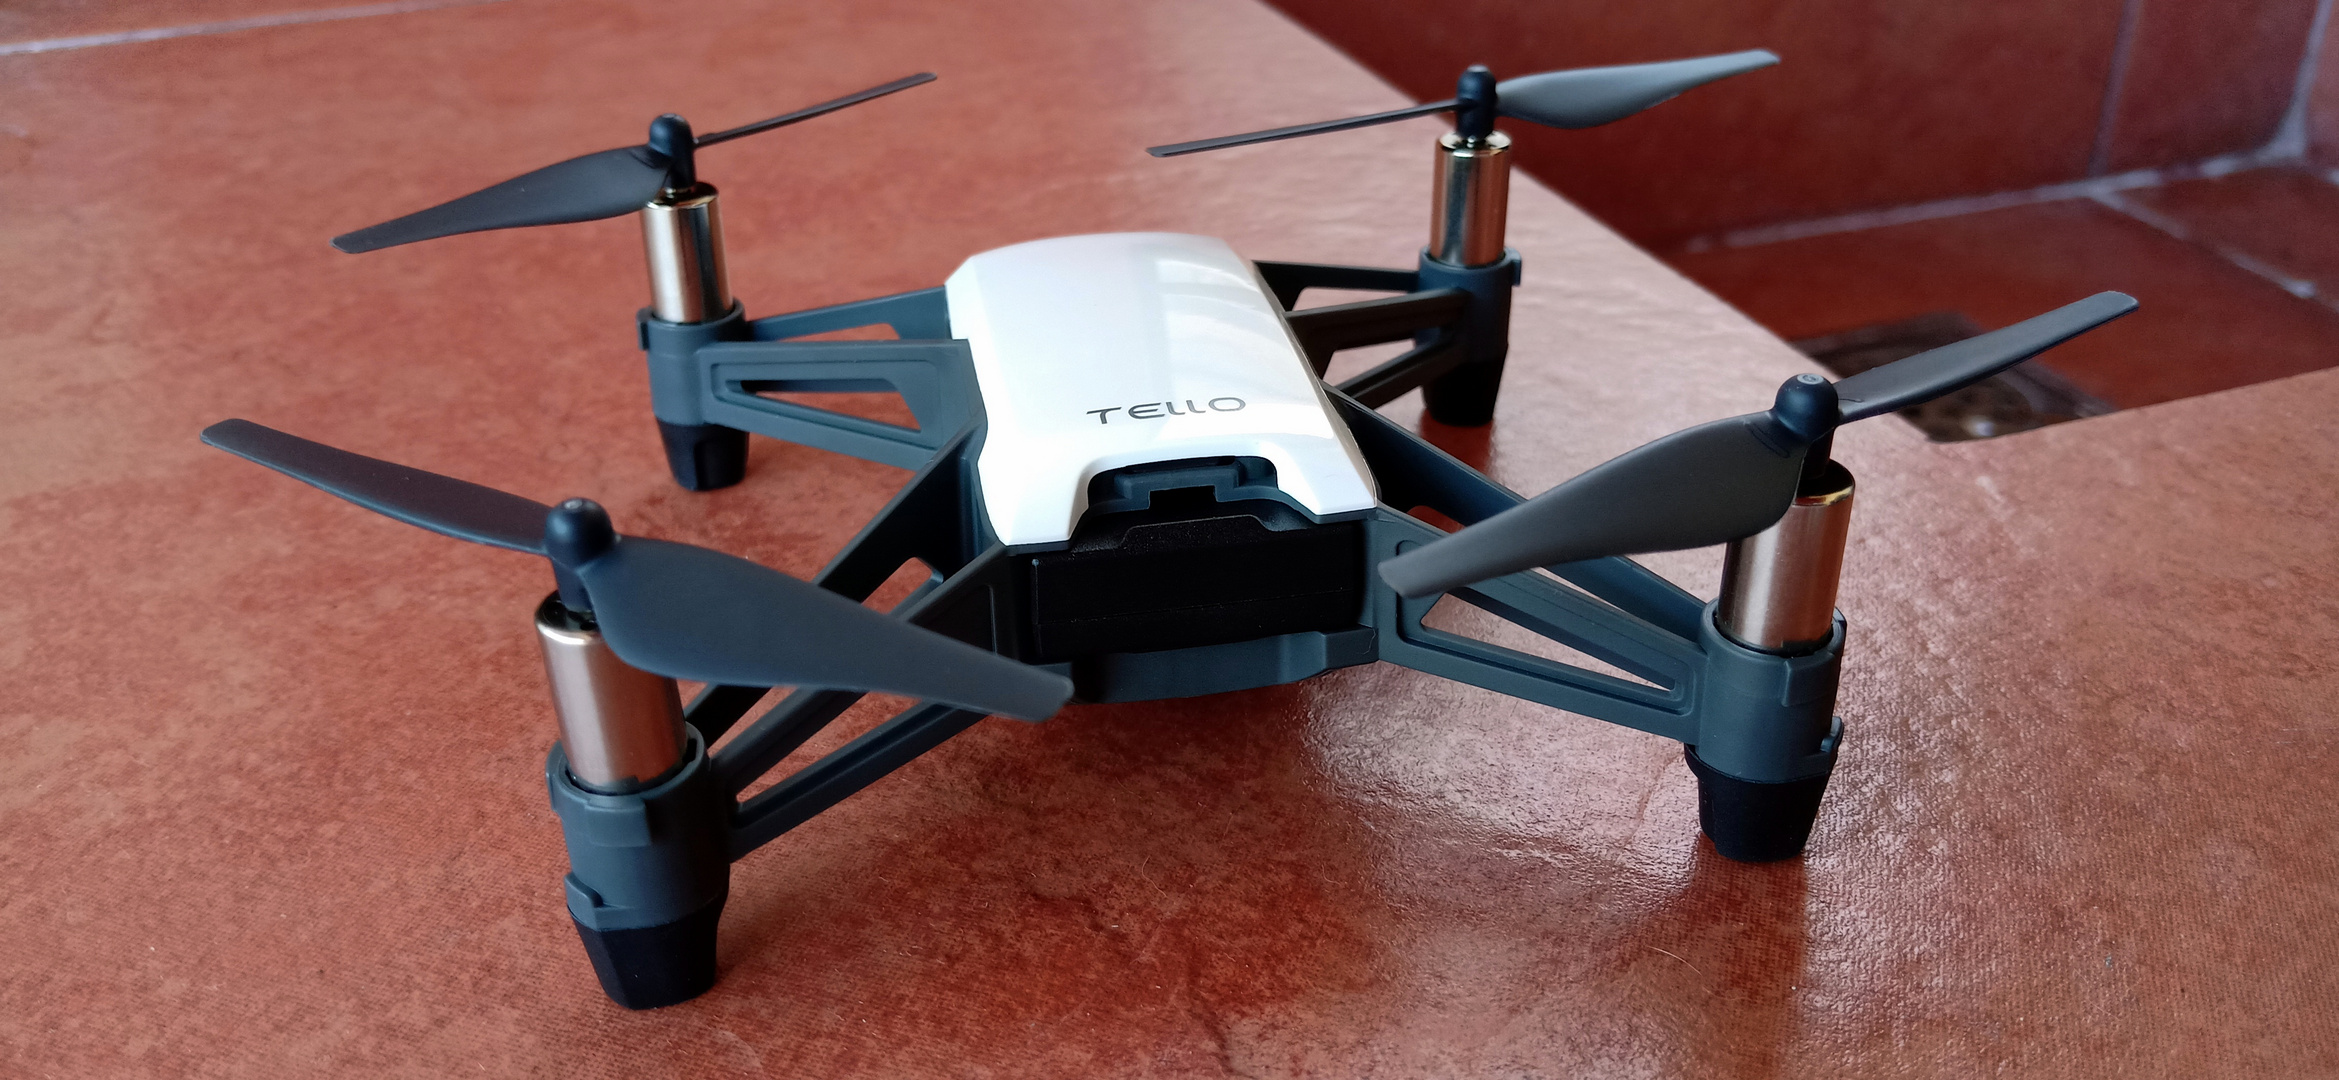 My Initial Review of the DJI Tello Drone   rhk111's Gadgets and